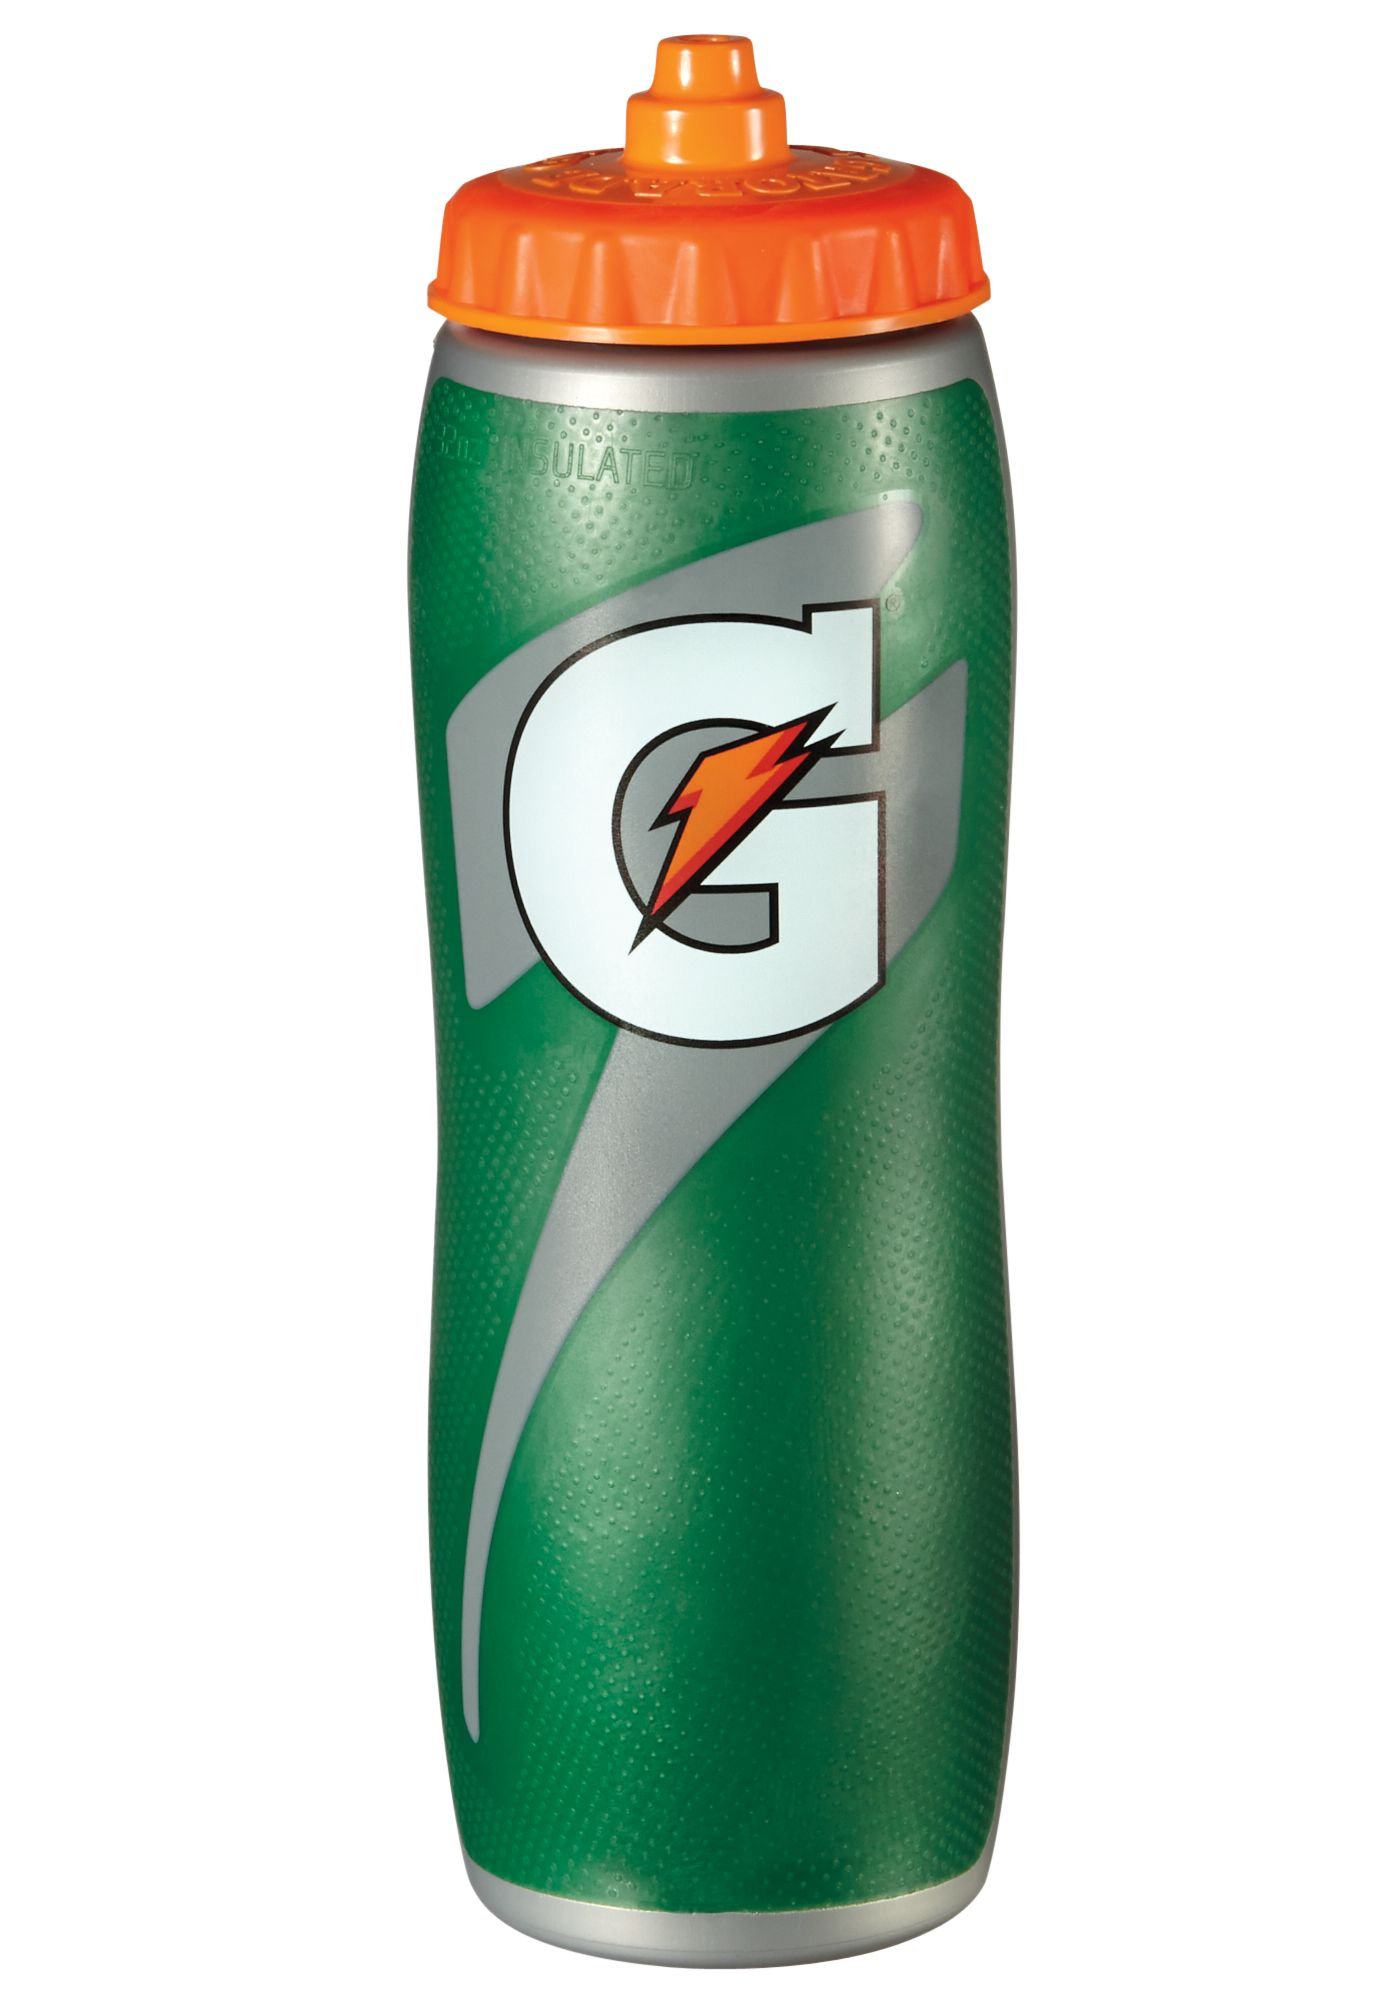 Gatorade 32 oz. Insulated Squeeze Bottle